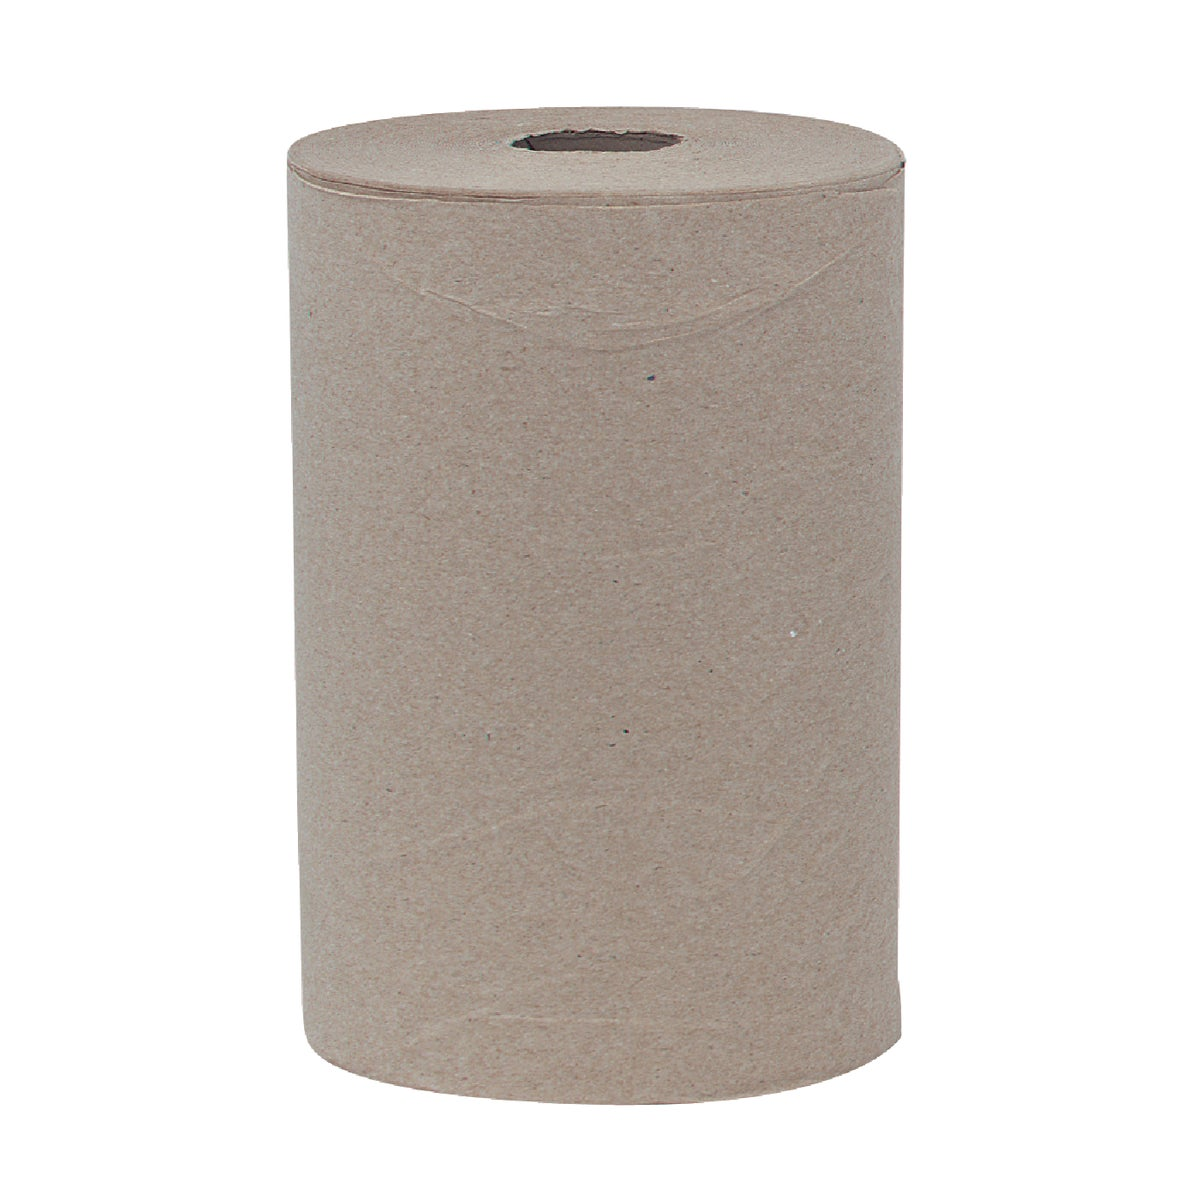 HARD ROLL PAPER TOWELS - KCC02021 by Lagassesweet  Incom